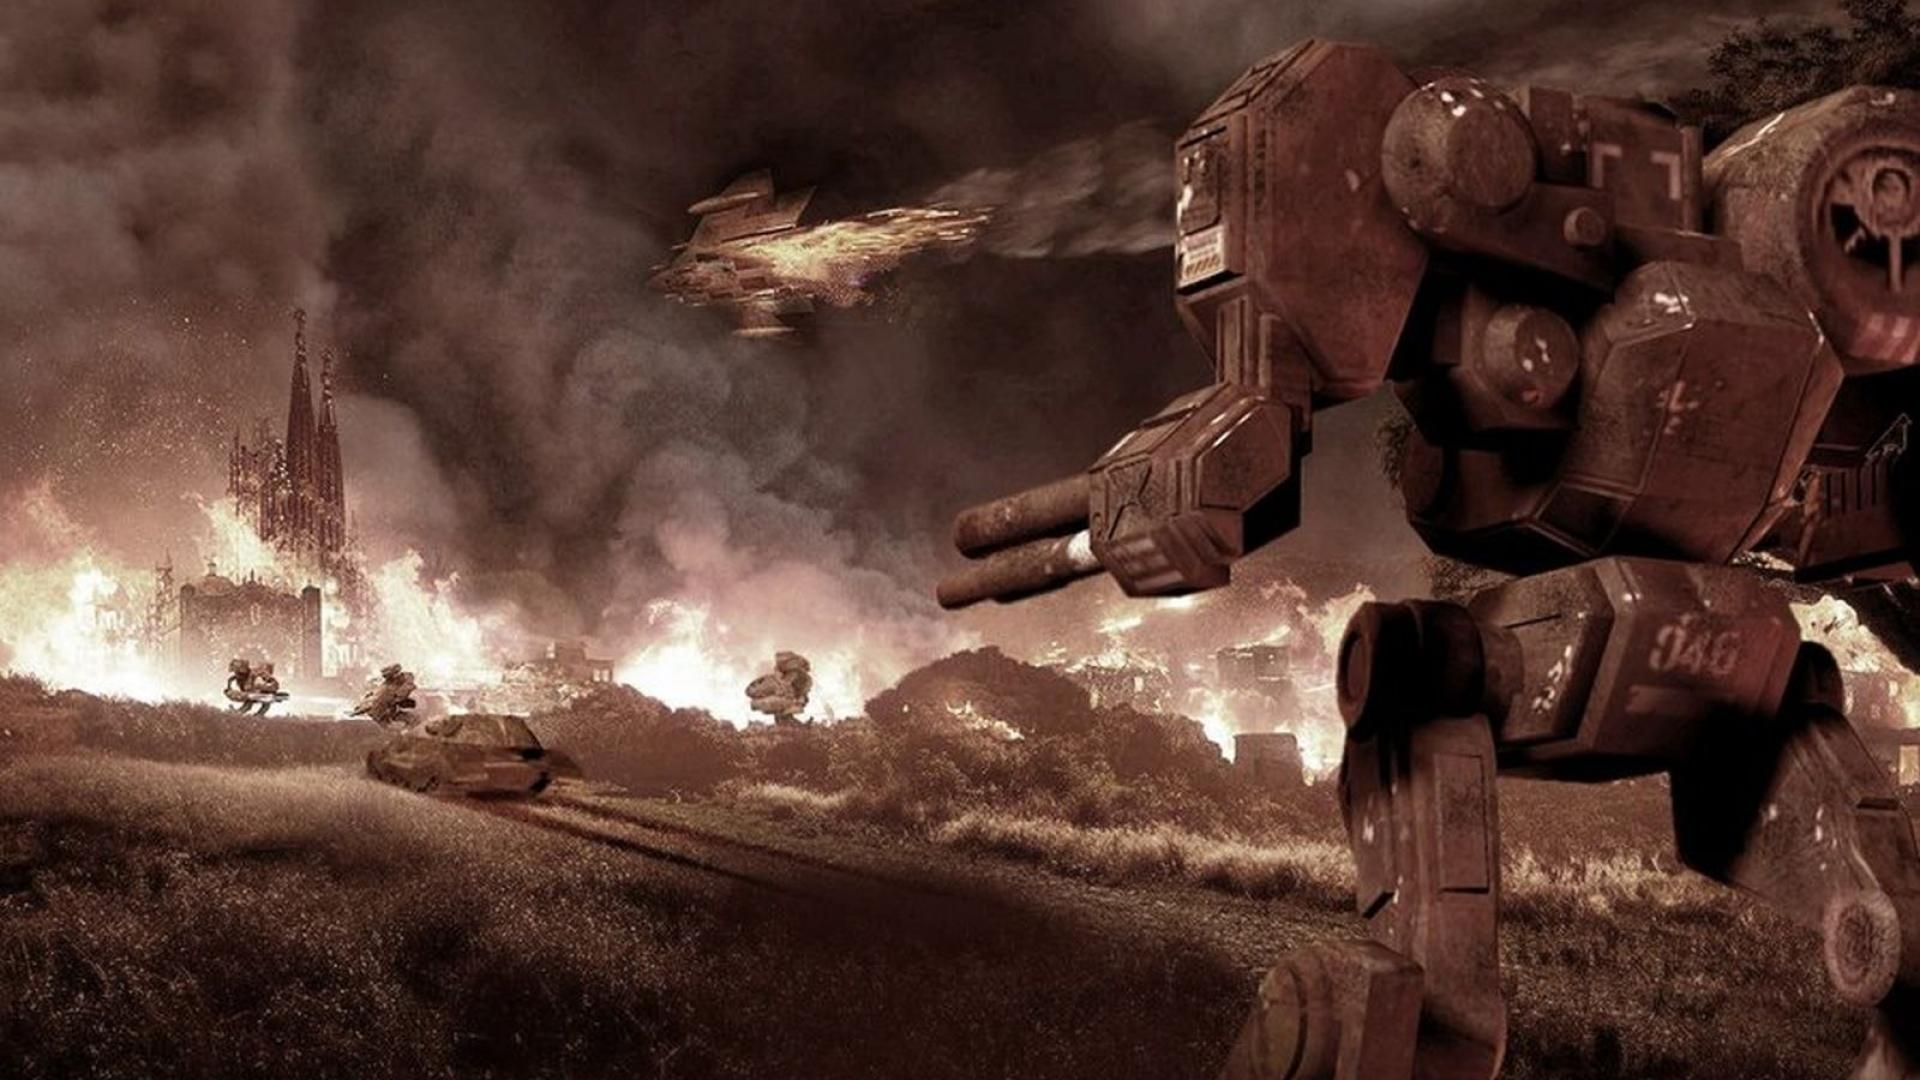 Battletech wallpaper 1600x1000 HQ WALLPAPER   31750 1920x1080